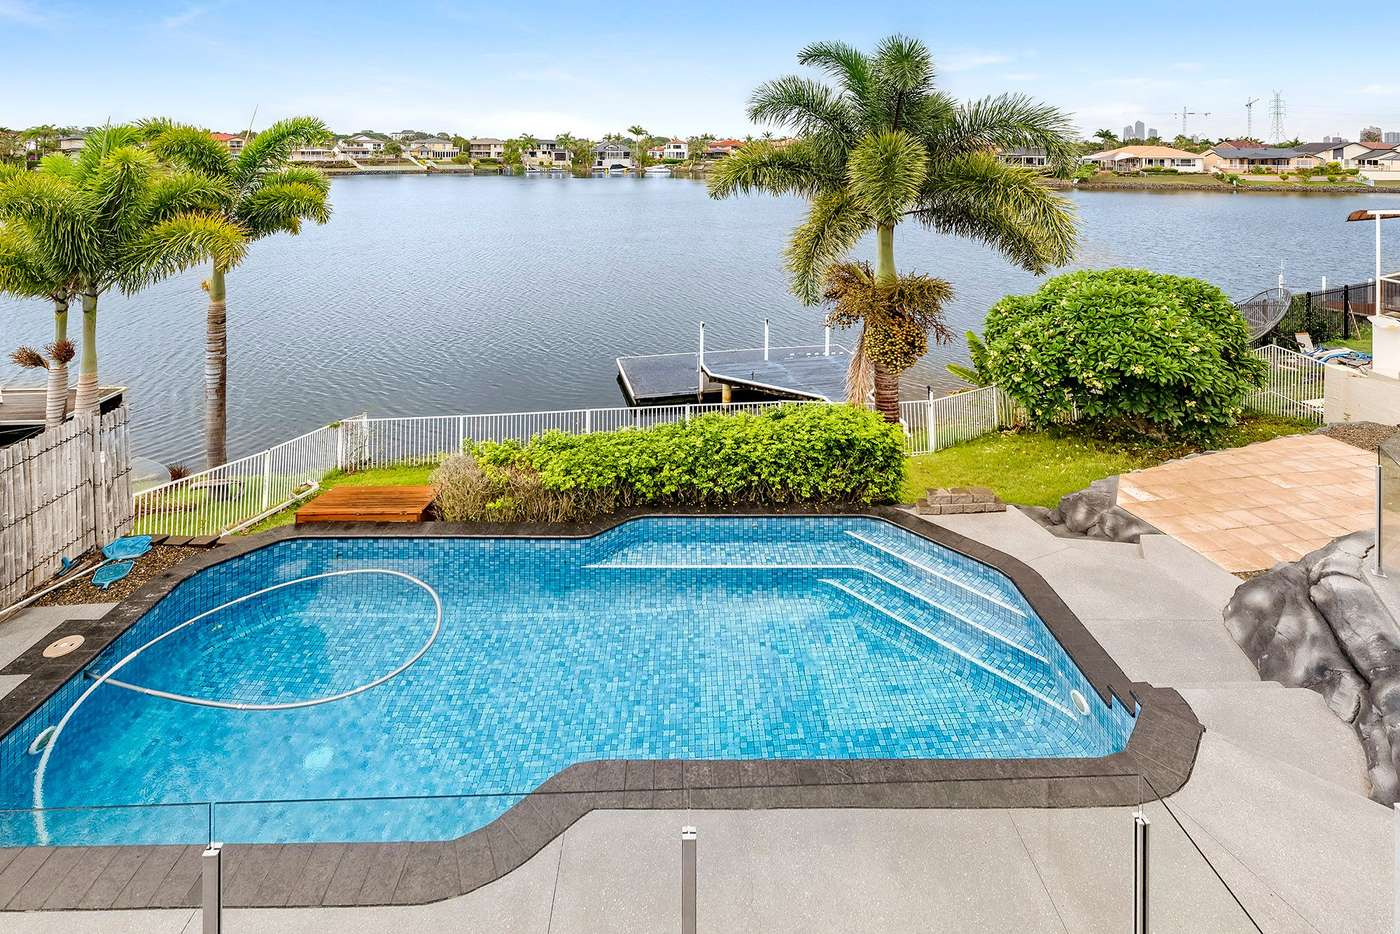 Main view of Homely house listing, 156 Port Jackson Boulevard, Clear Island Waters QLD 4226